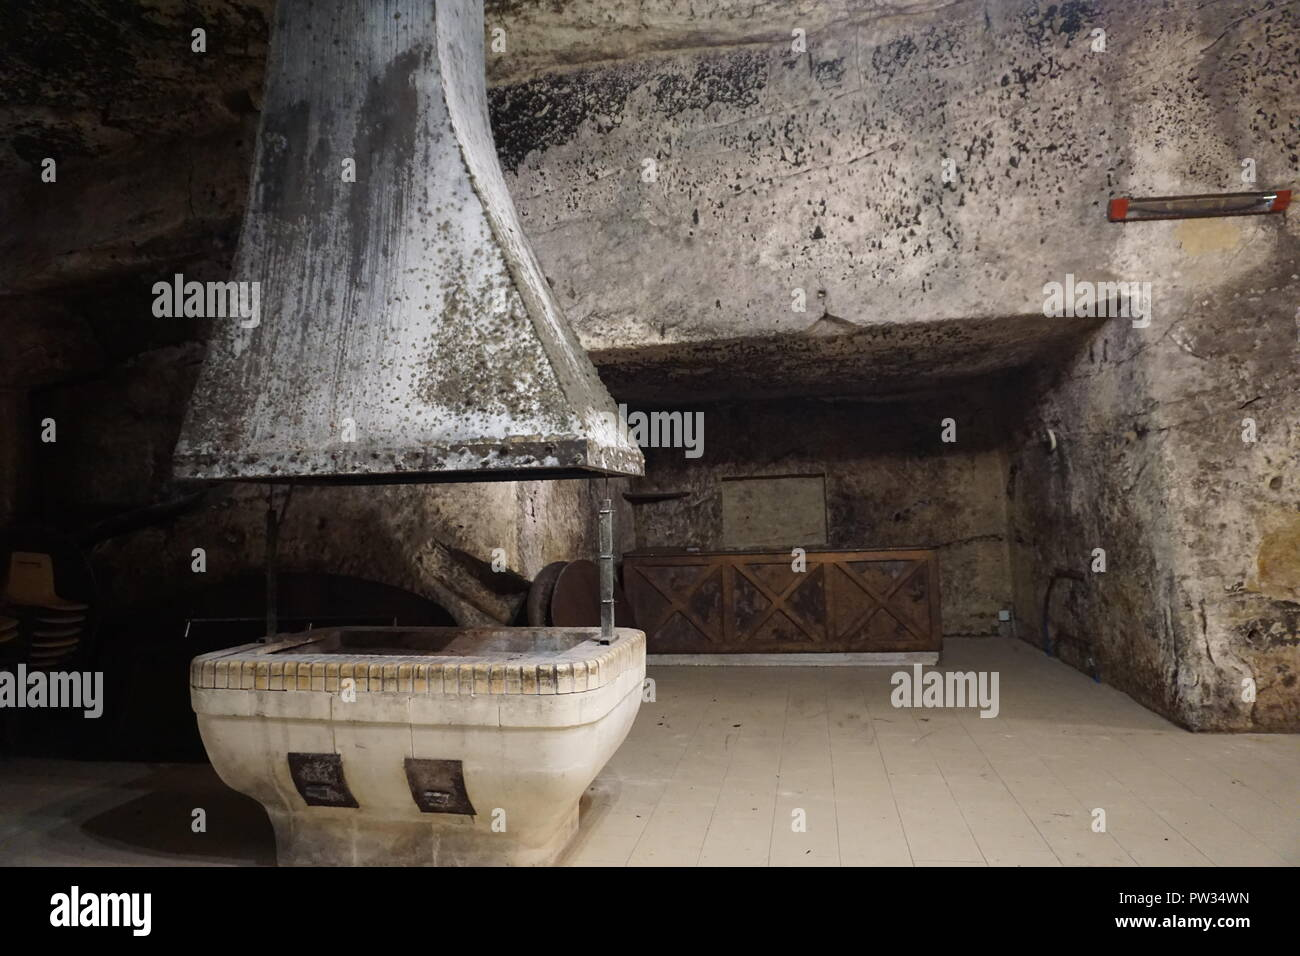 Troglodyte cave hosting receptions, weddings or fun events with a built in kitchen in the Loire Valley, France - Stock Image